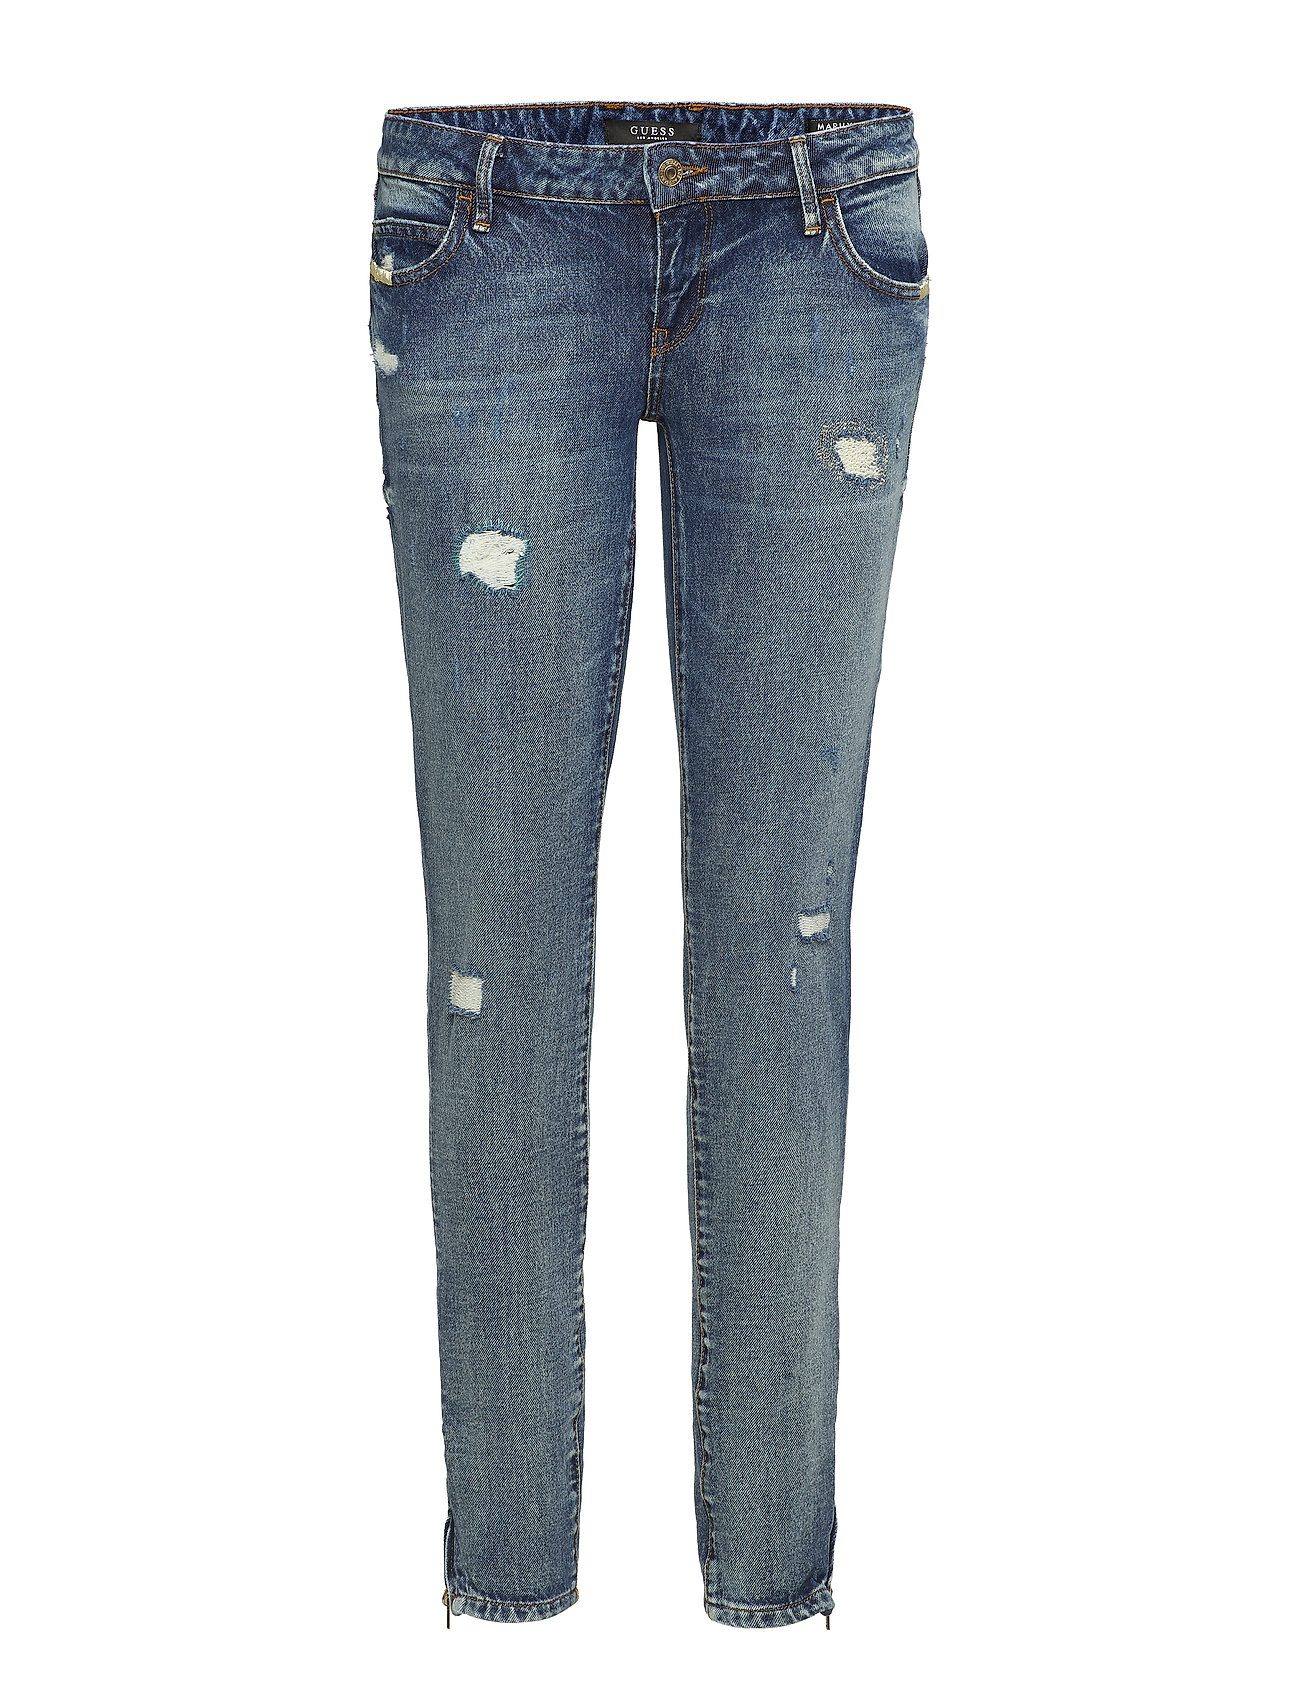 GUESS Jeans MARILYN 3 ZIP - WARPED USE